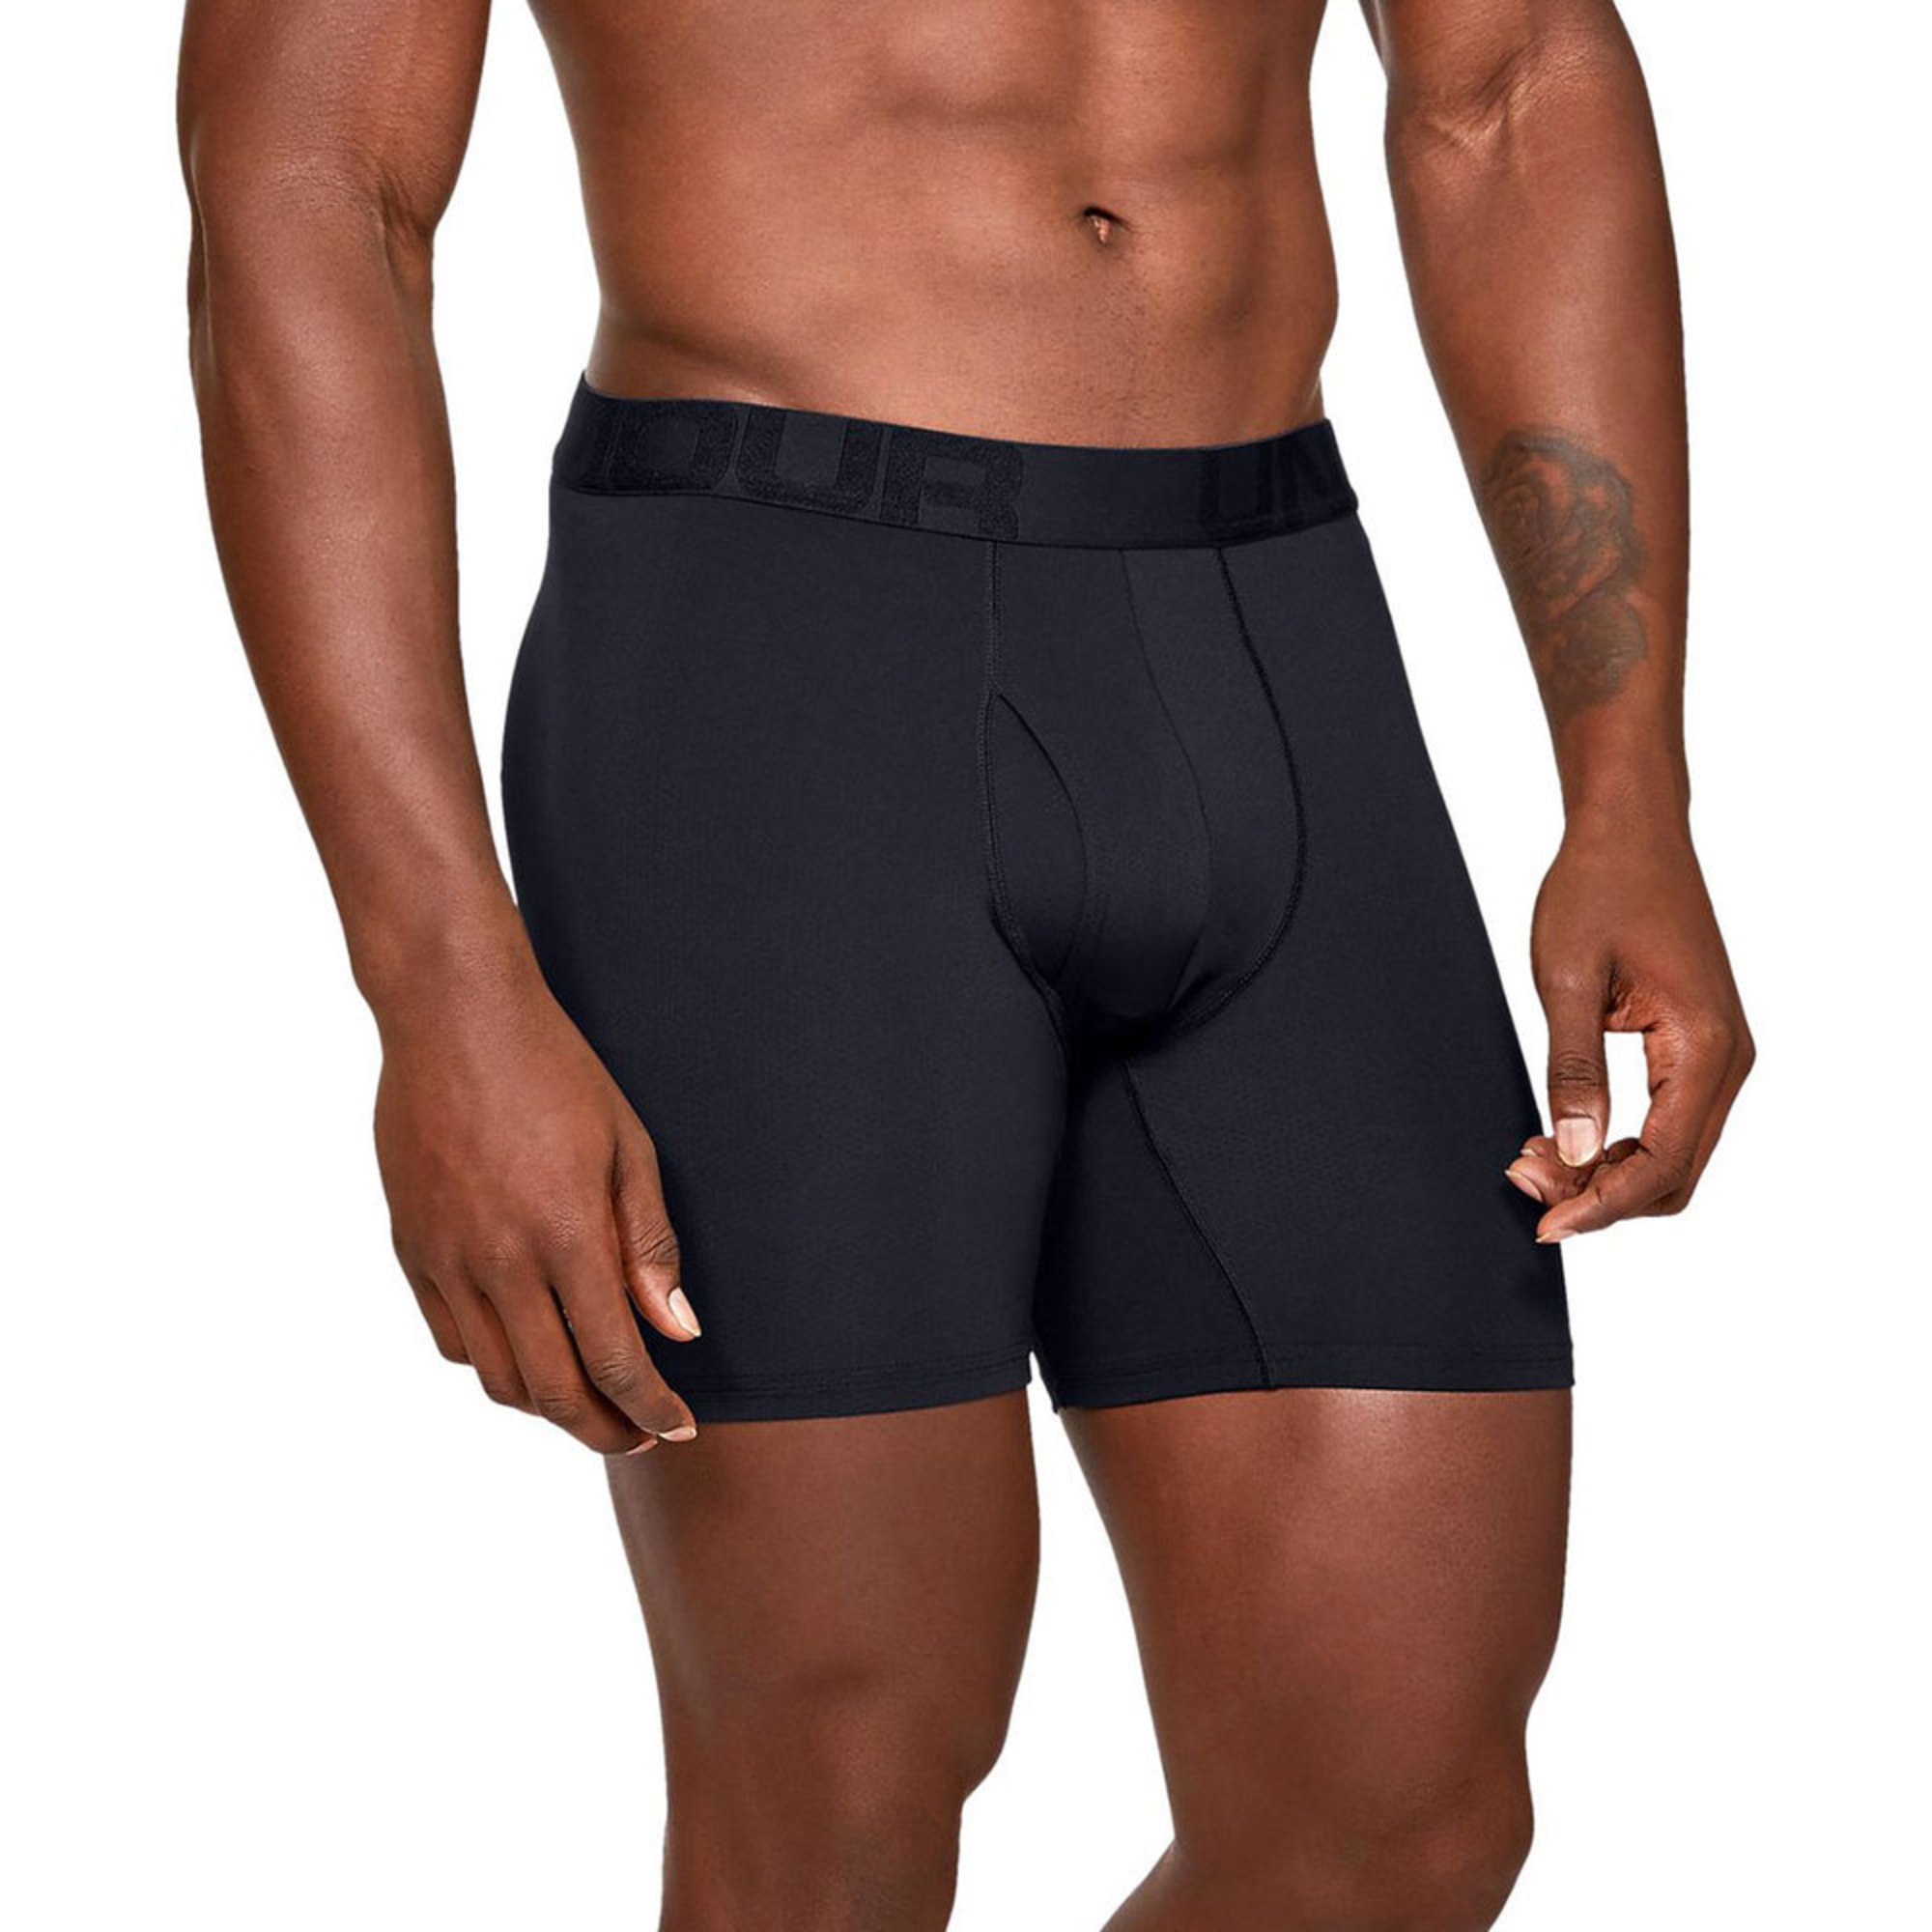 86322b1902cd63 Under Armour Men's Tech Mesh 2-pack 6 Inch Boxer Briefs | Men's ...